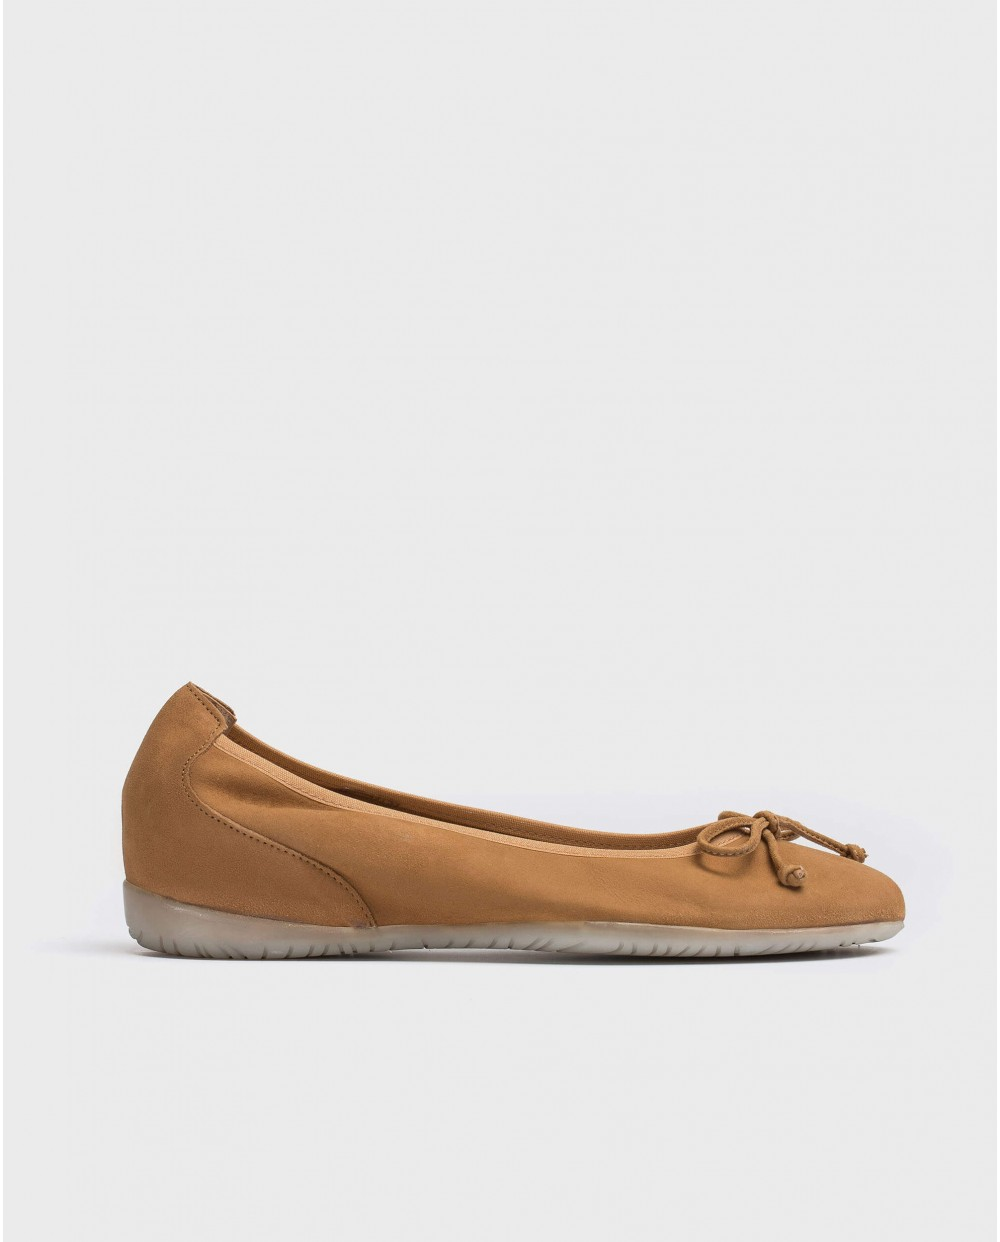 Wonders-Women-Ballet pump with bow detail